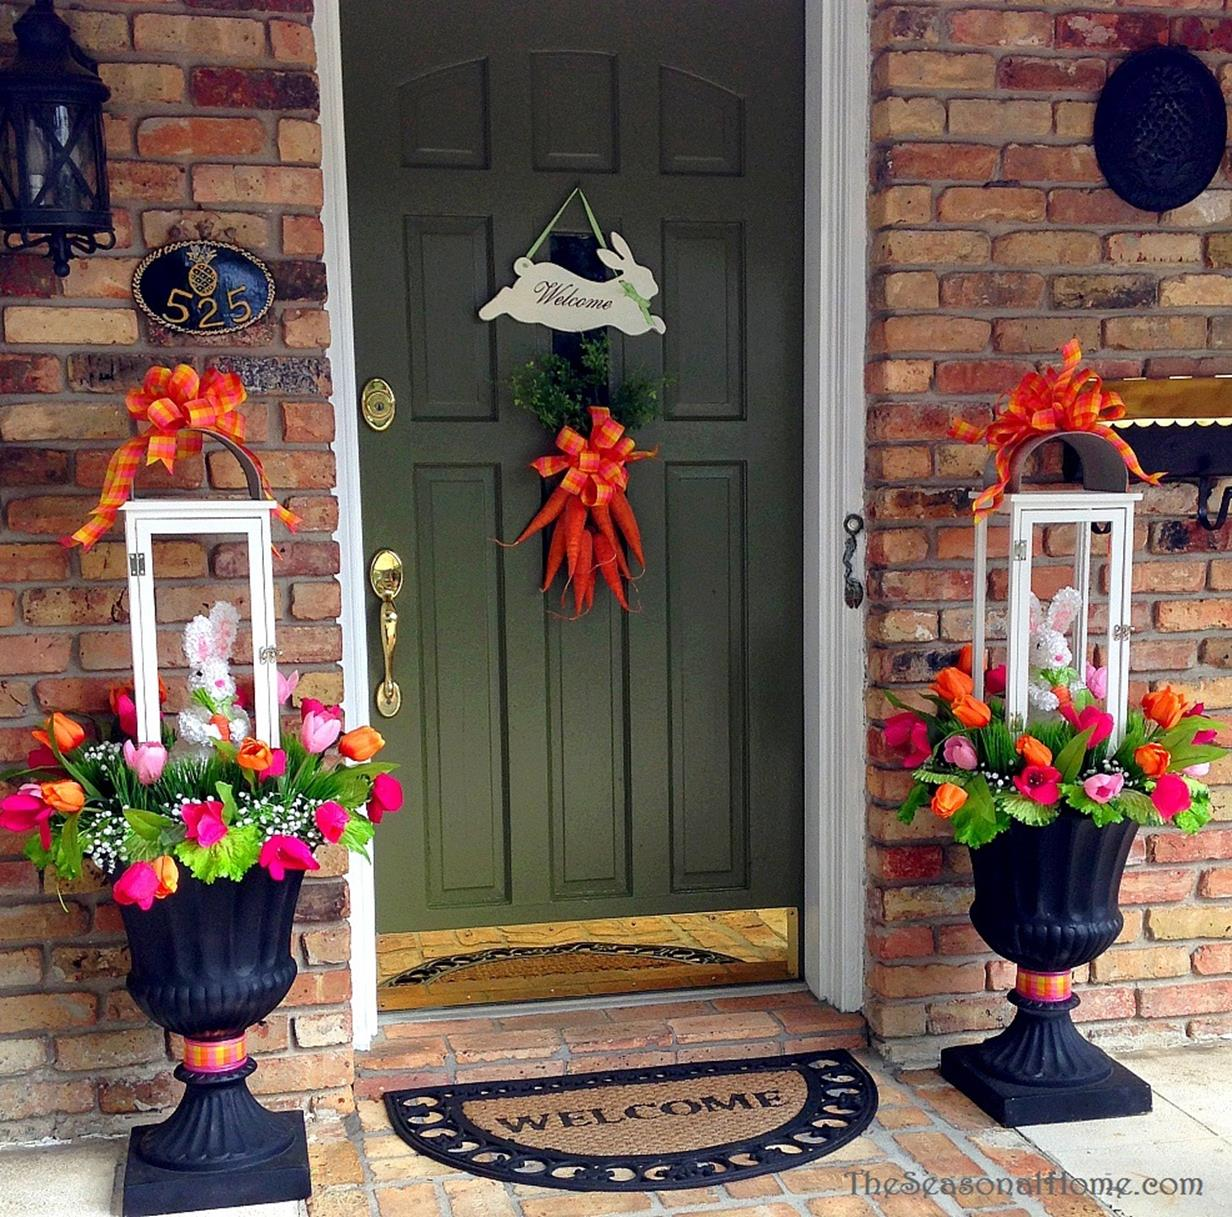 Spring Garden Decorating Ideas for Front Porch 31